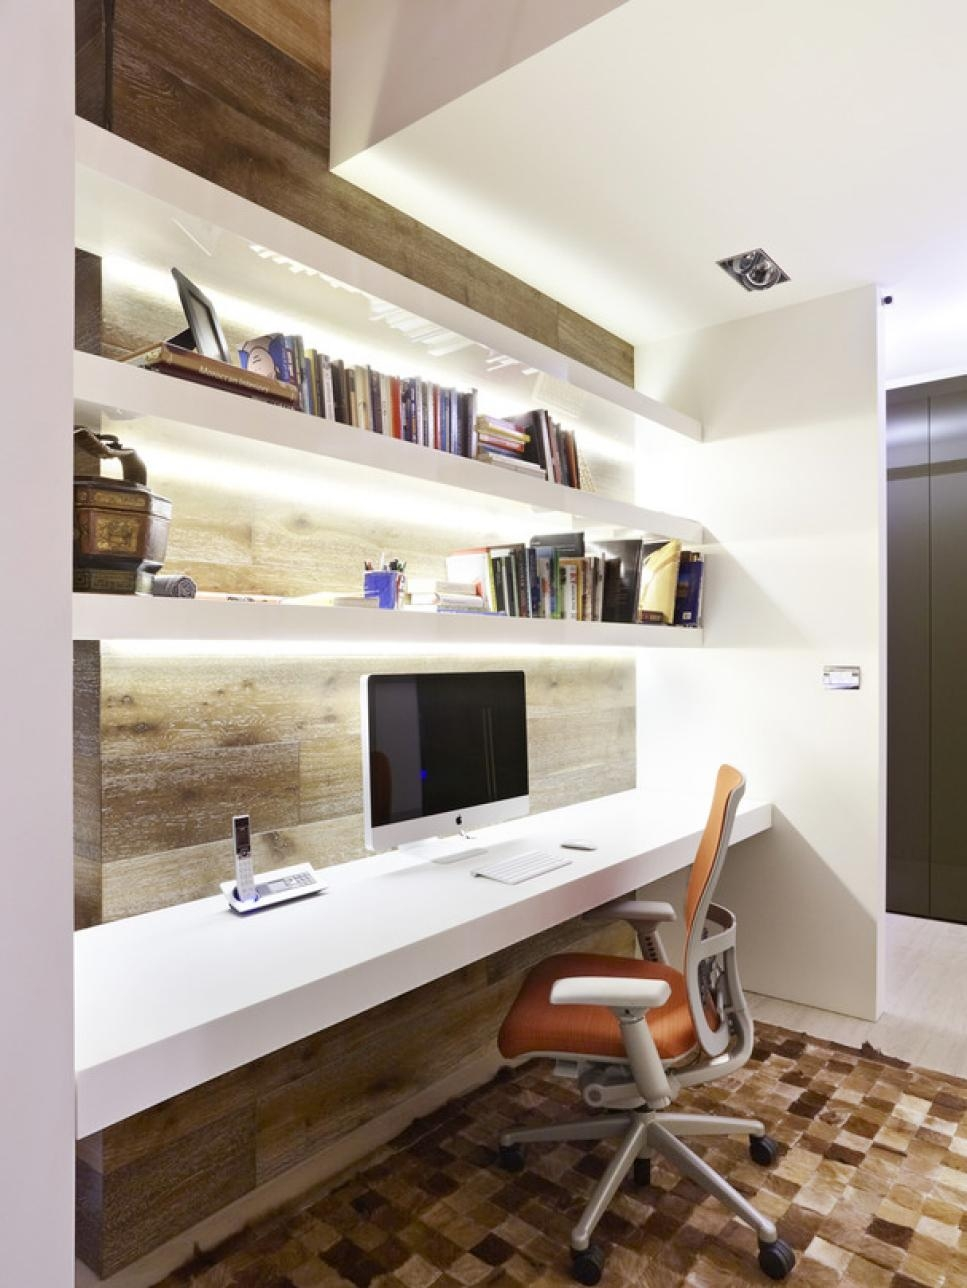 Functional And Stylish Wall To Wall Shelves Hgtv In Full Wall Shelving Units (View 8 of 15)